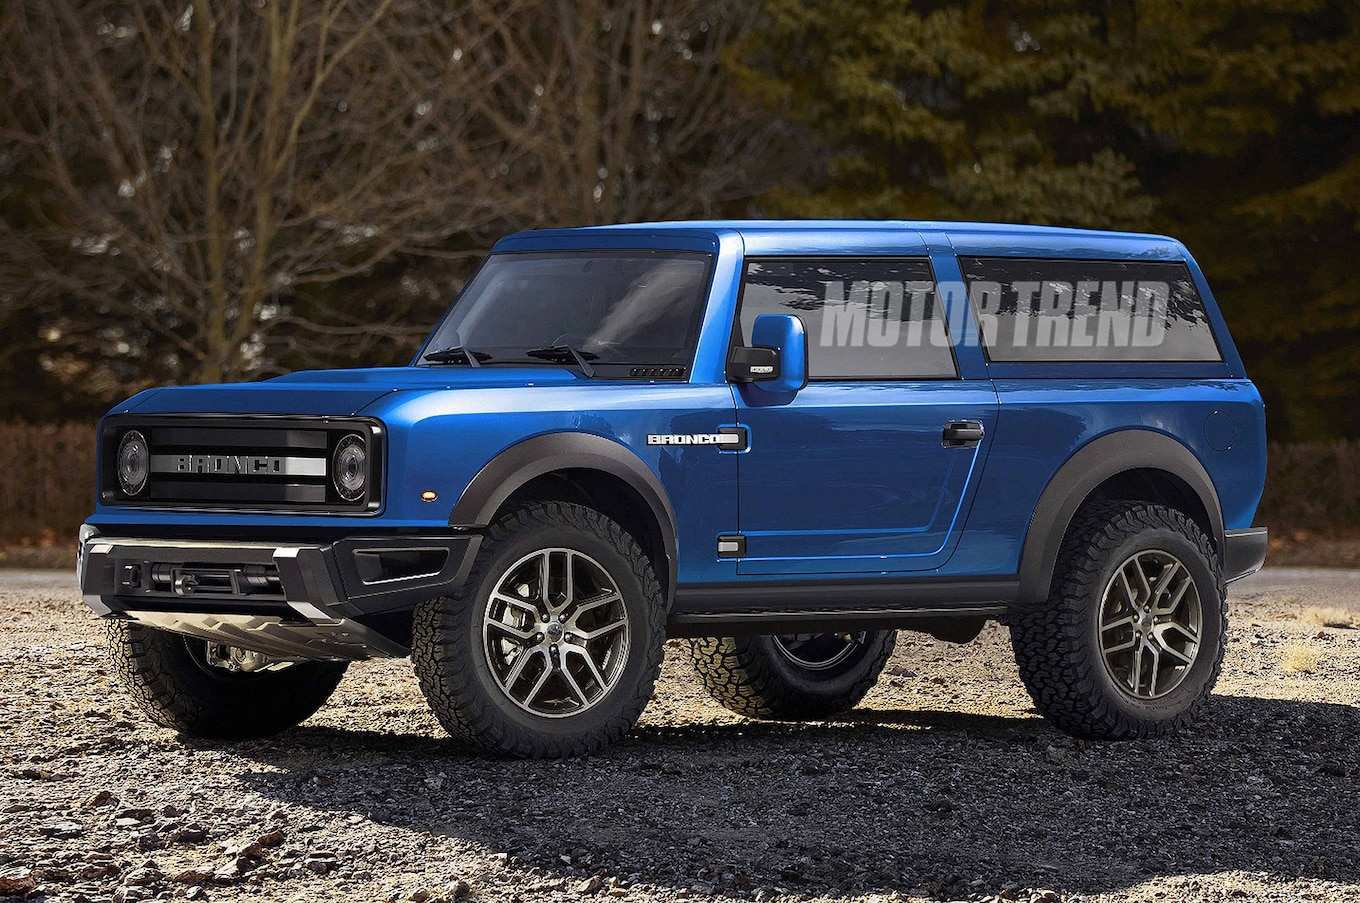 91 All New Ford Bronco 2020 Release Date Prices